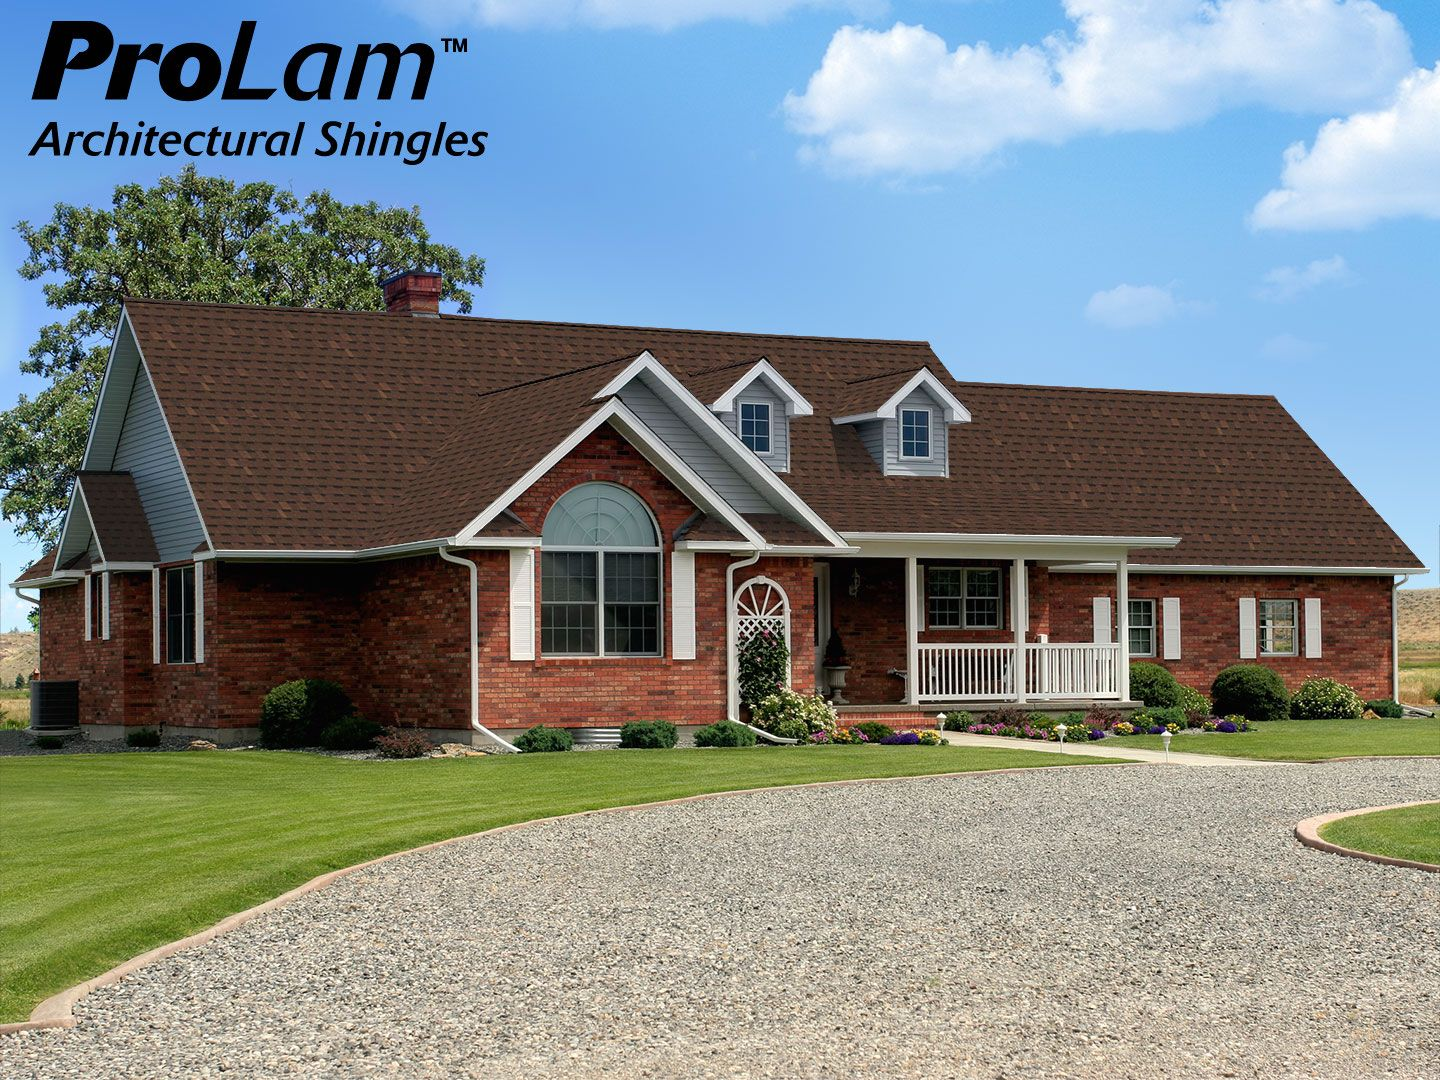 ProLam™ Shingles In Burnt Sienna Deliver The Designer Look Of An  Architectural Shingle At A